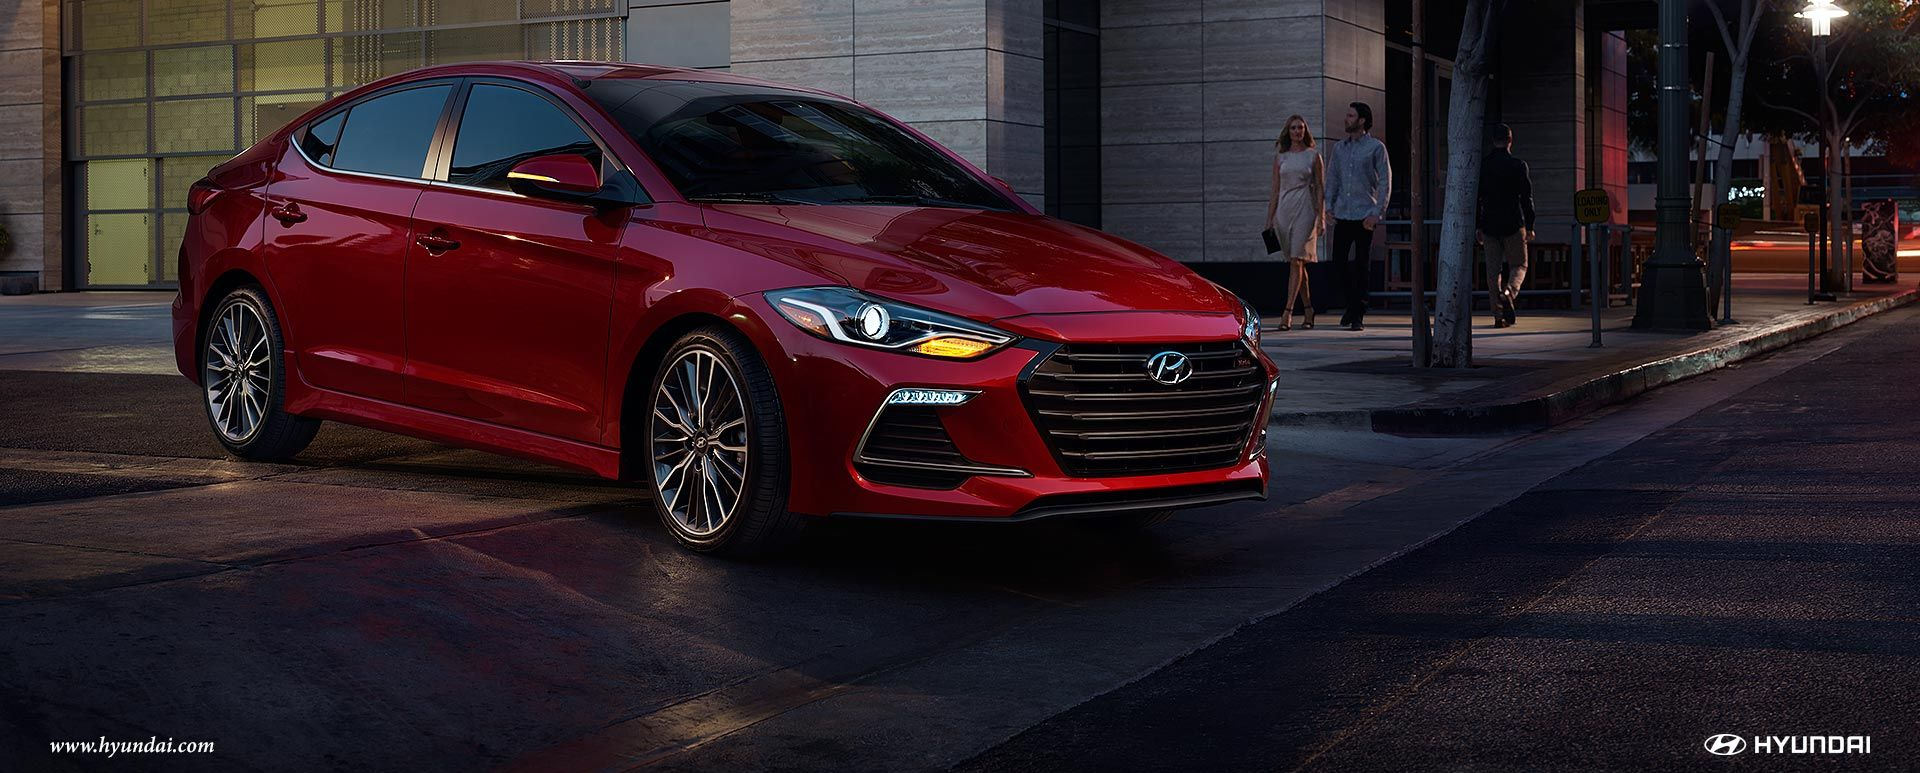 2017 Hyundai Elantra for Lease near Washington, DC